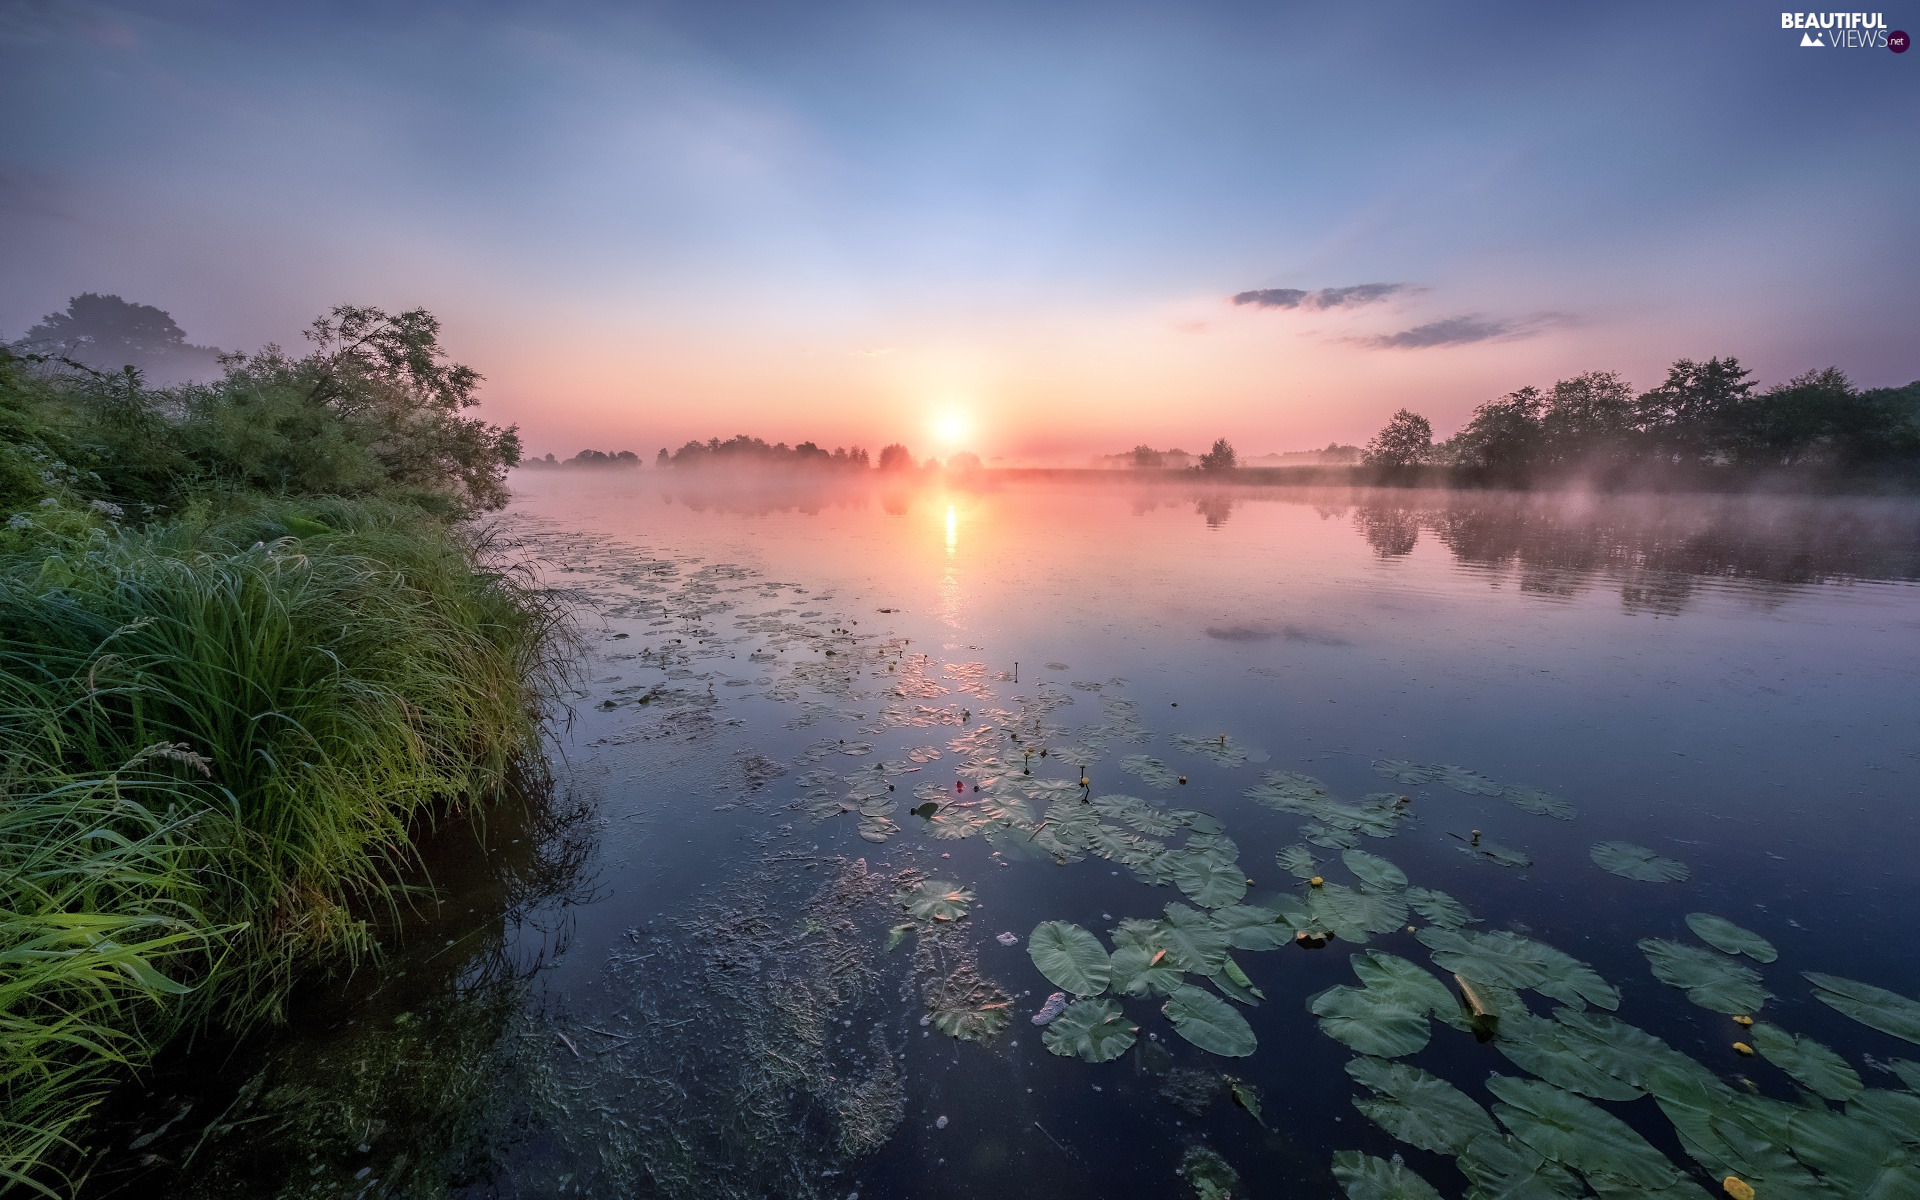 Dubna River, grass, lilies, water, Latgale, Latvia, Sunrise, Fog, dawn